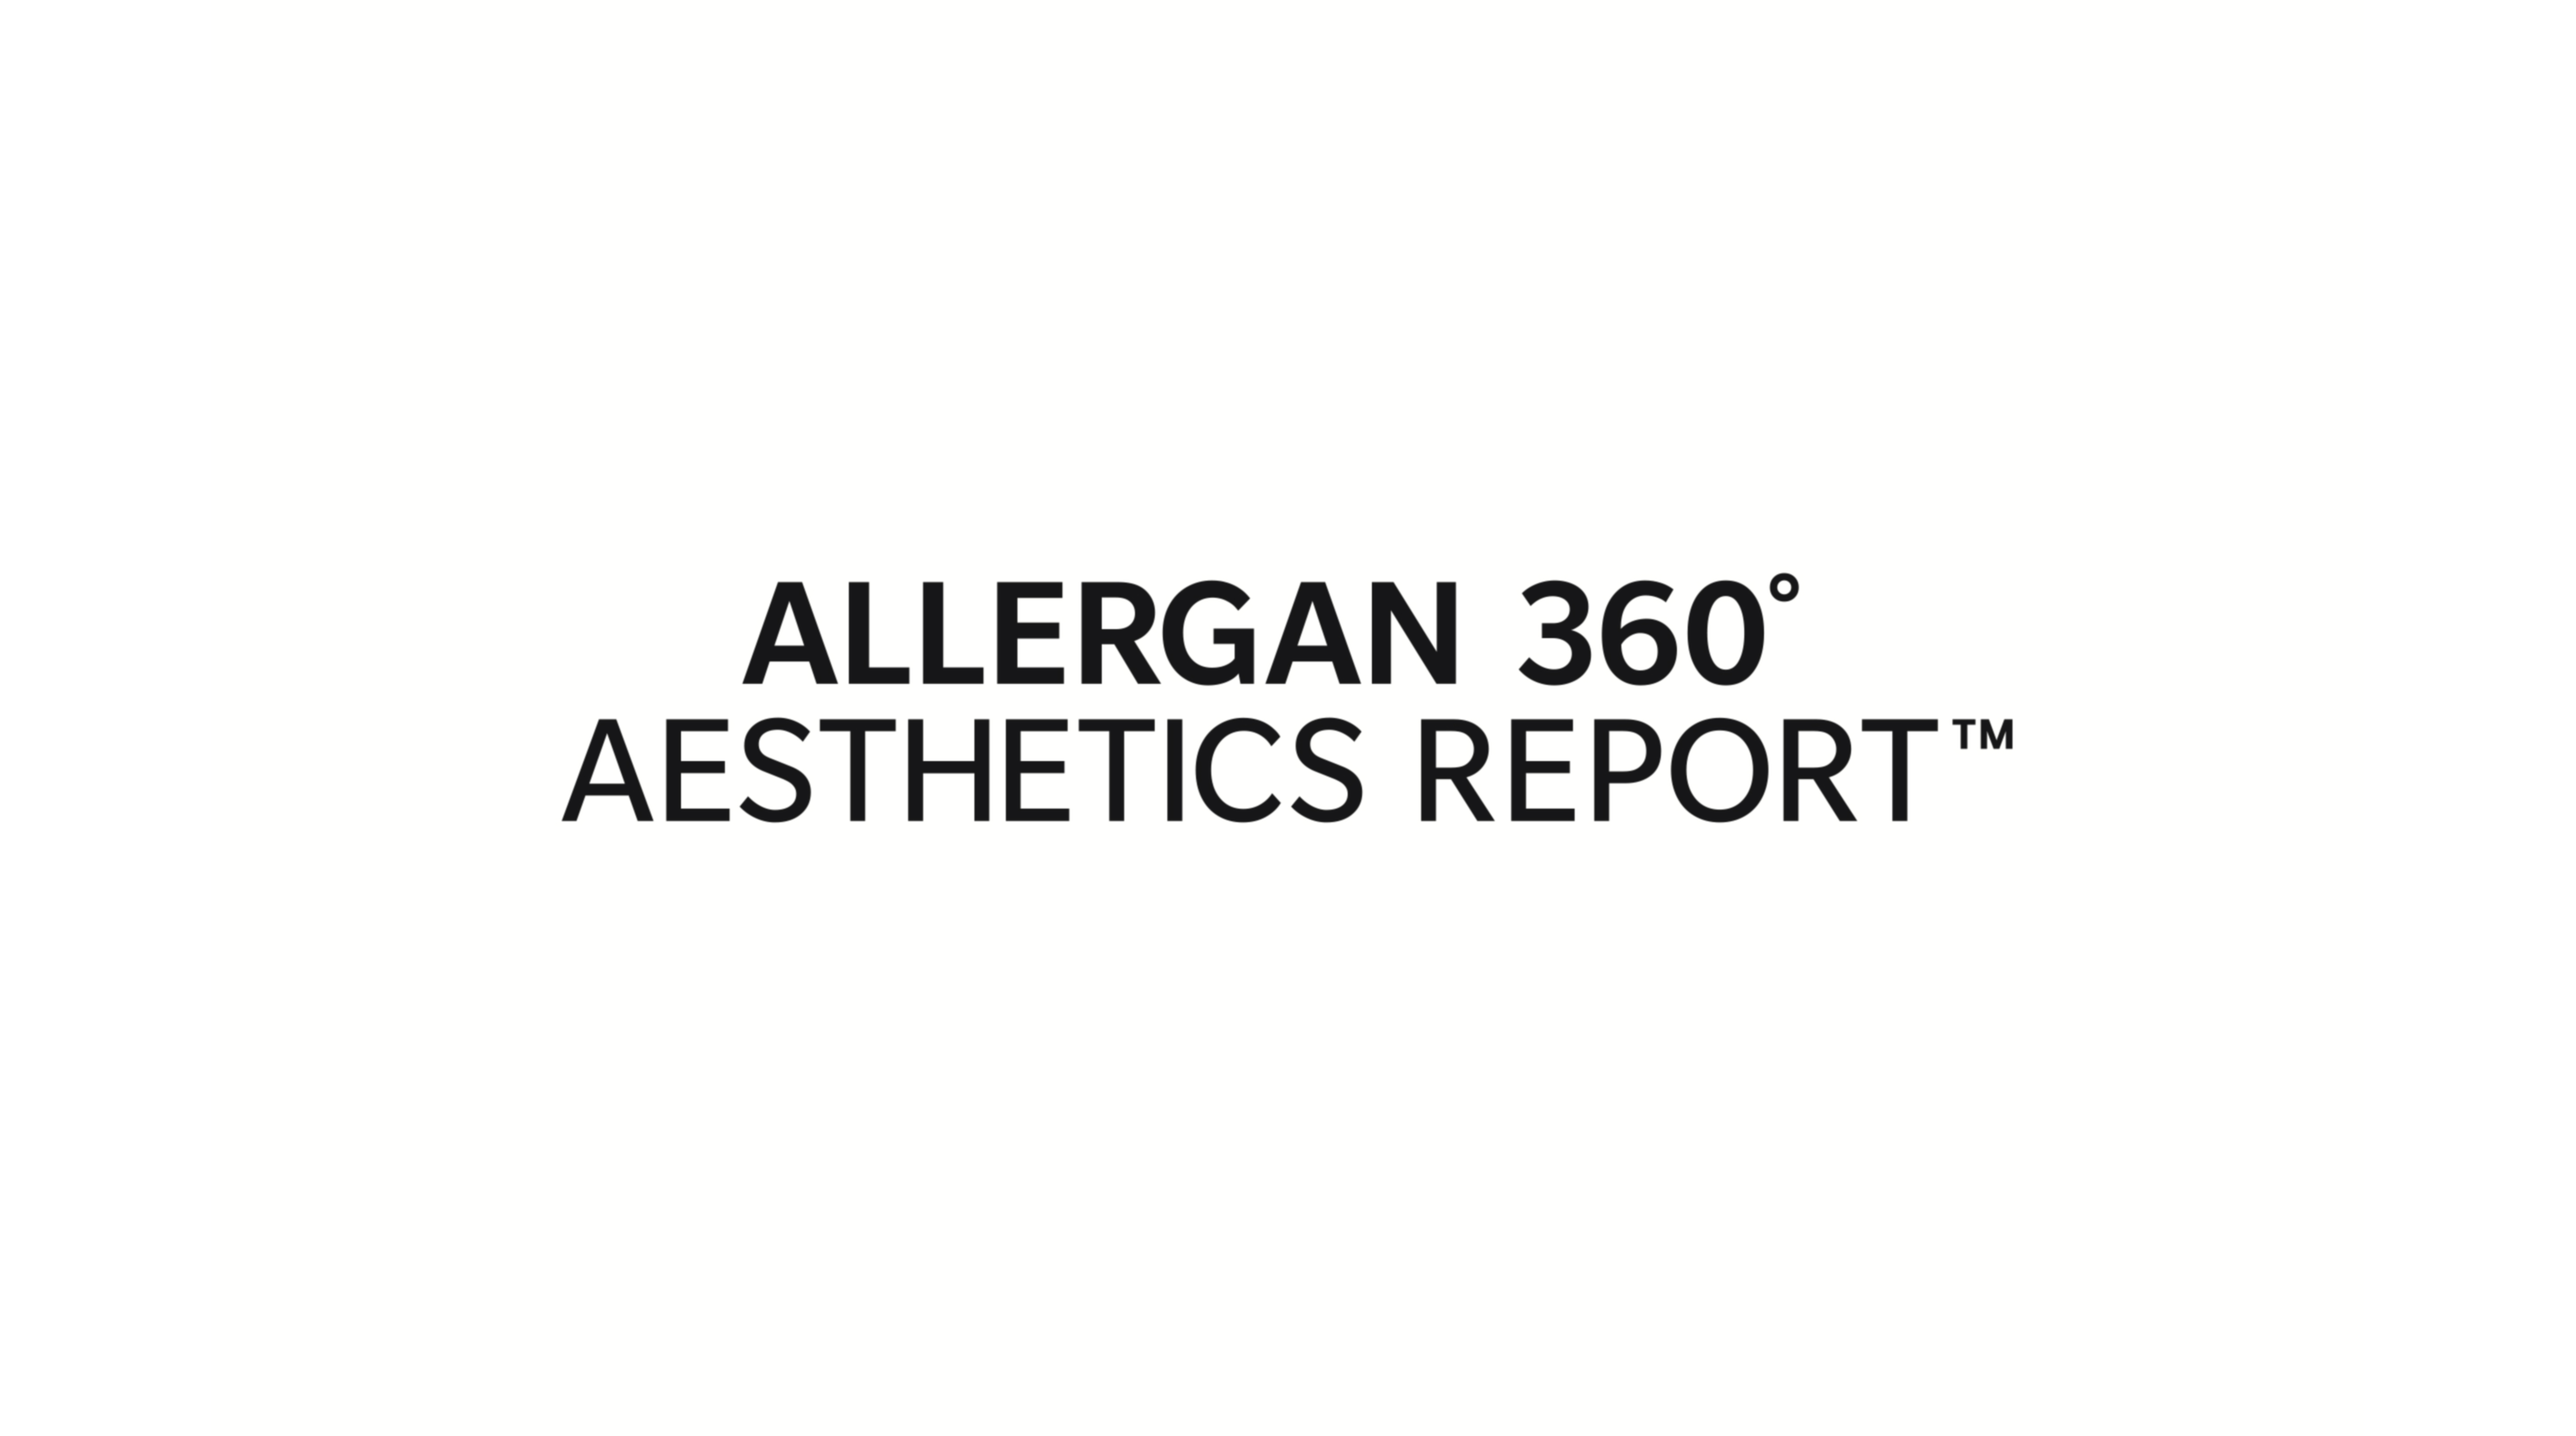 Allergan 360° Aesthetics Report Shines Light on Evolving Beauty Perceptions Around the World image